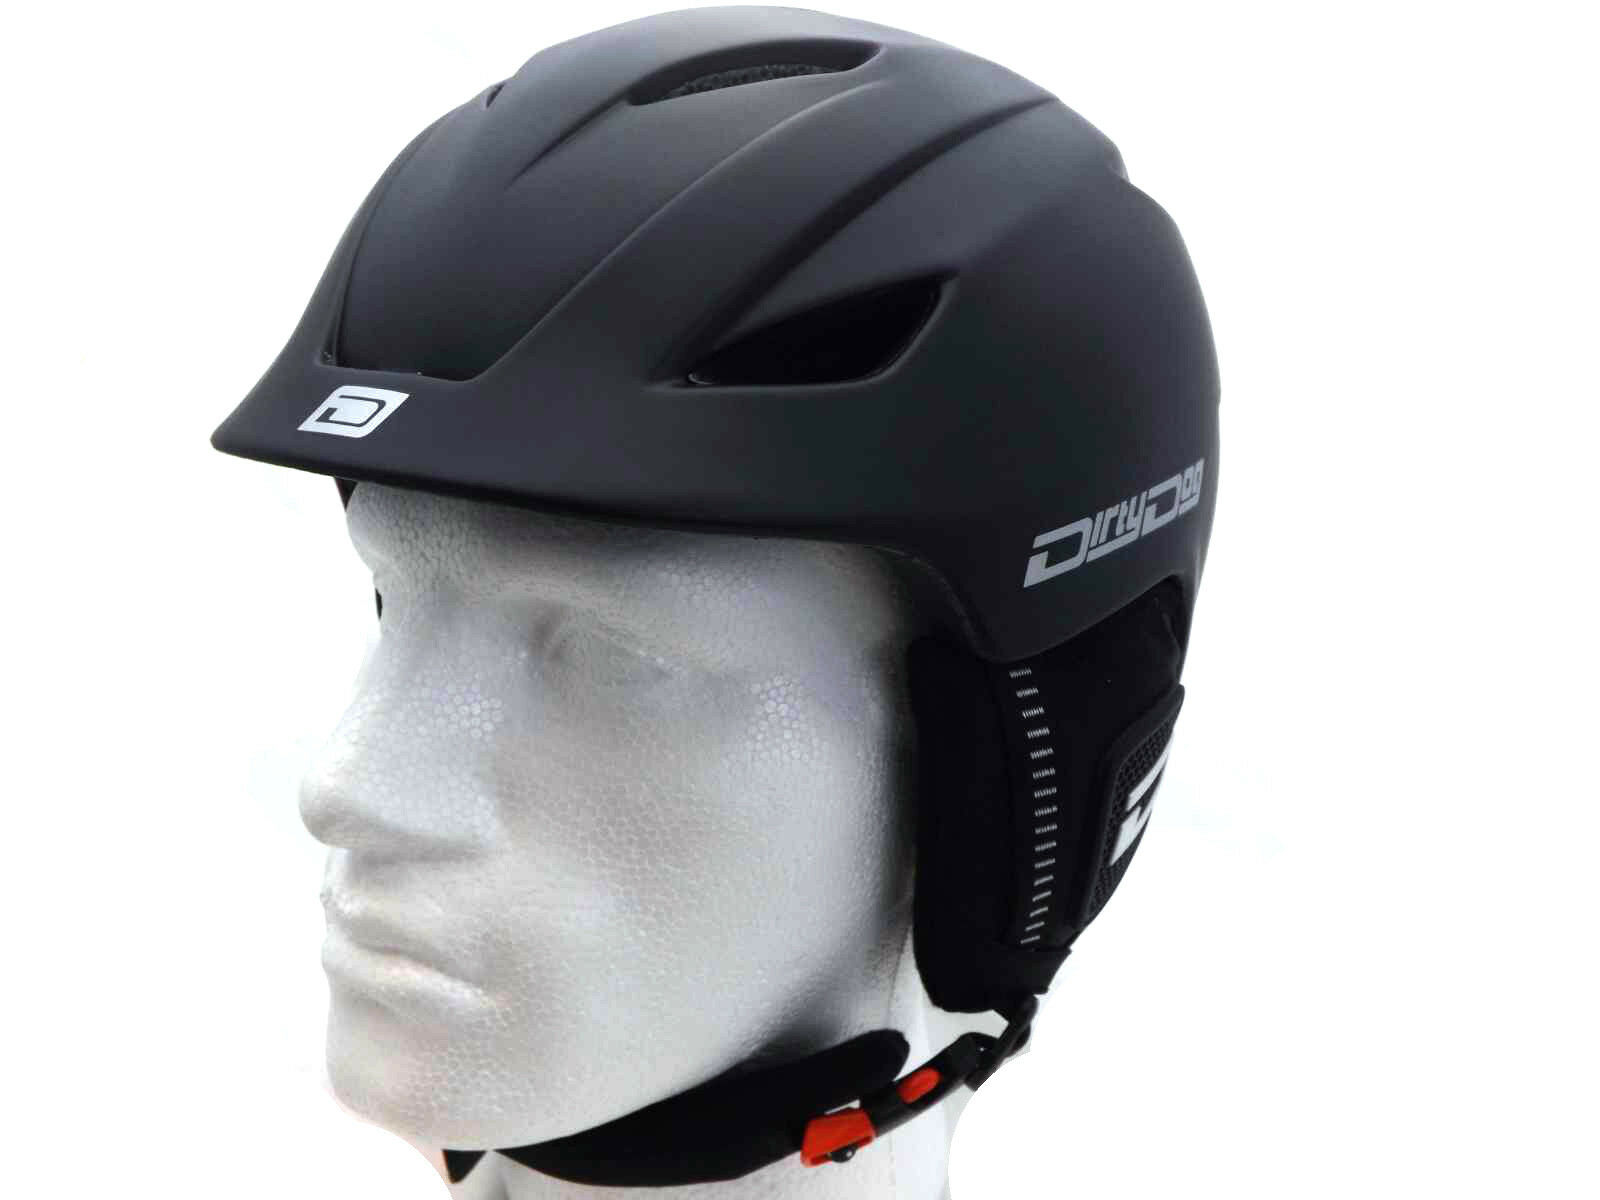 Dirty Dog Tamaño Pequeño Ajustable Eclipse Casco Snowboard Negro Mate